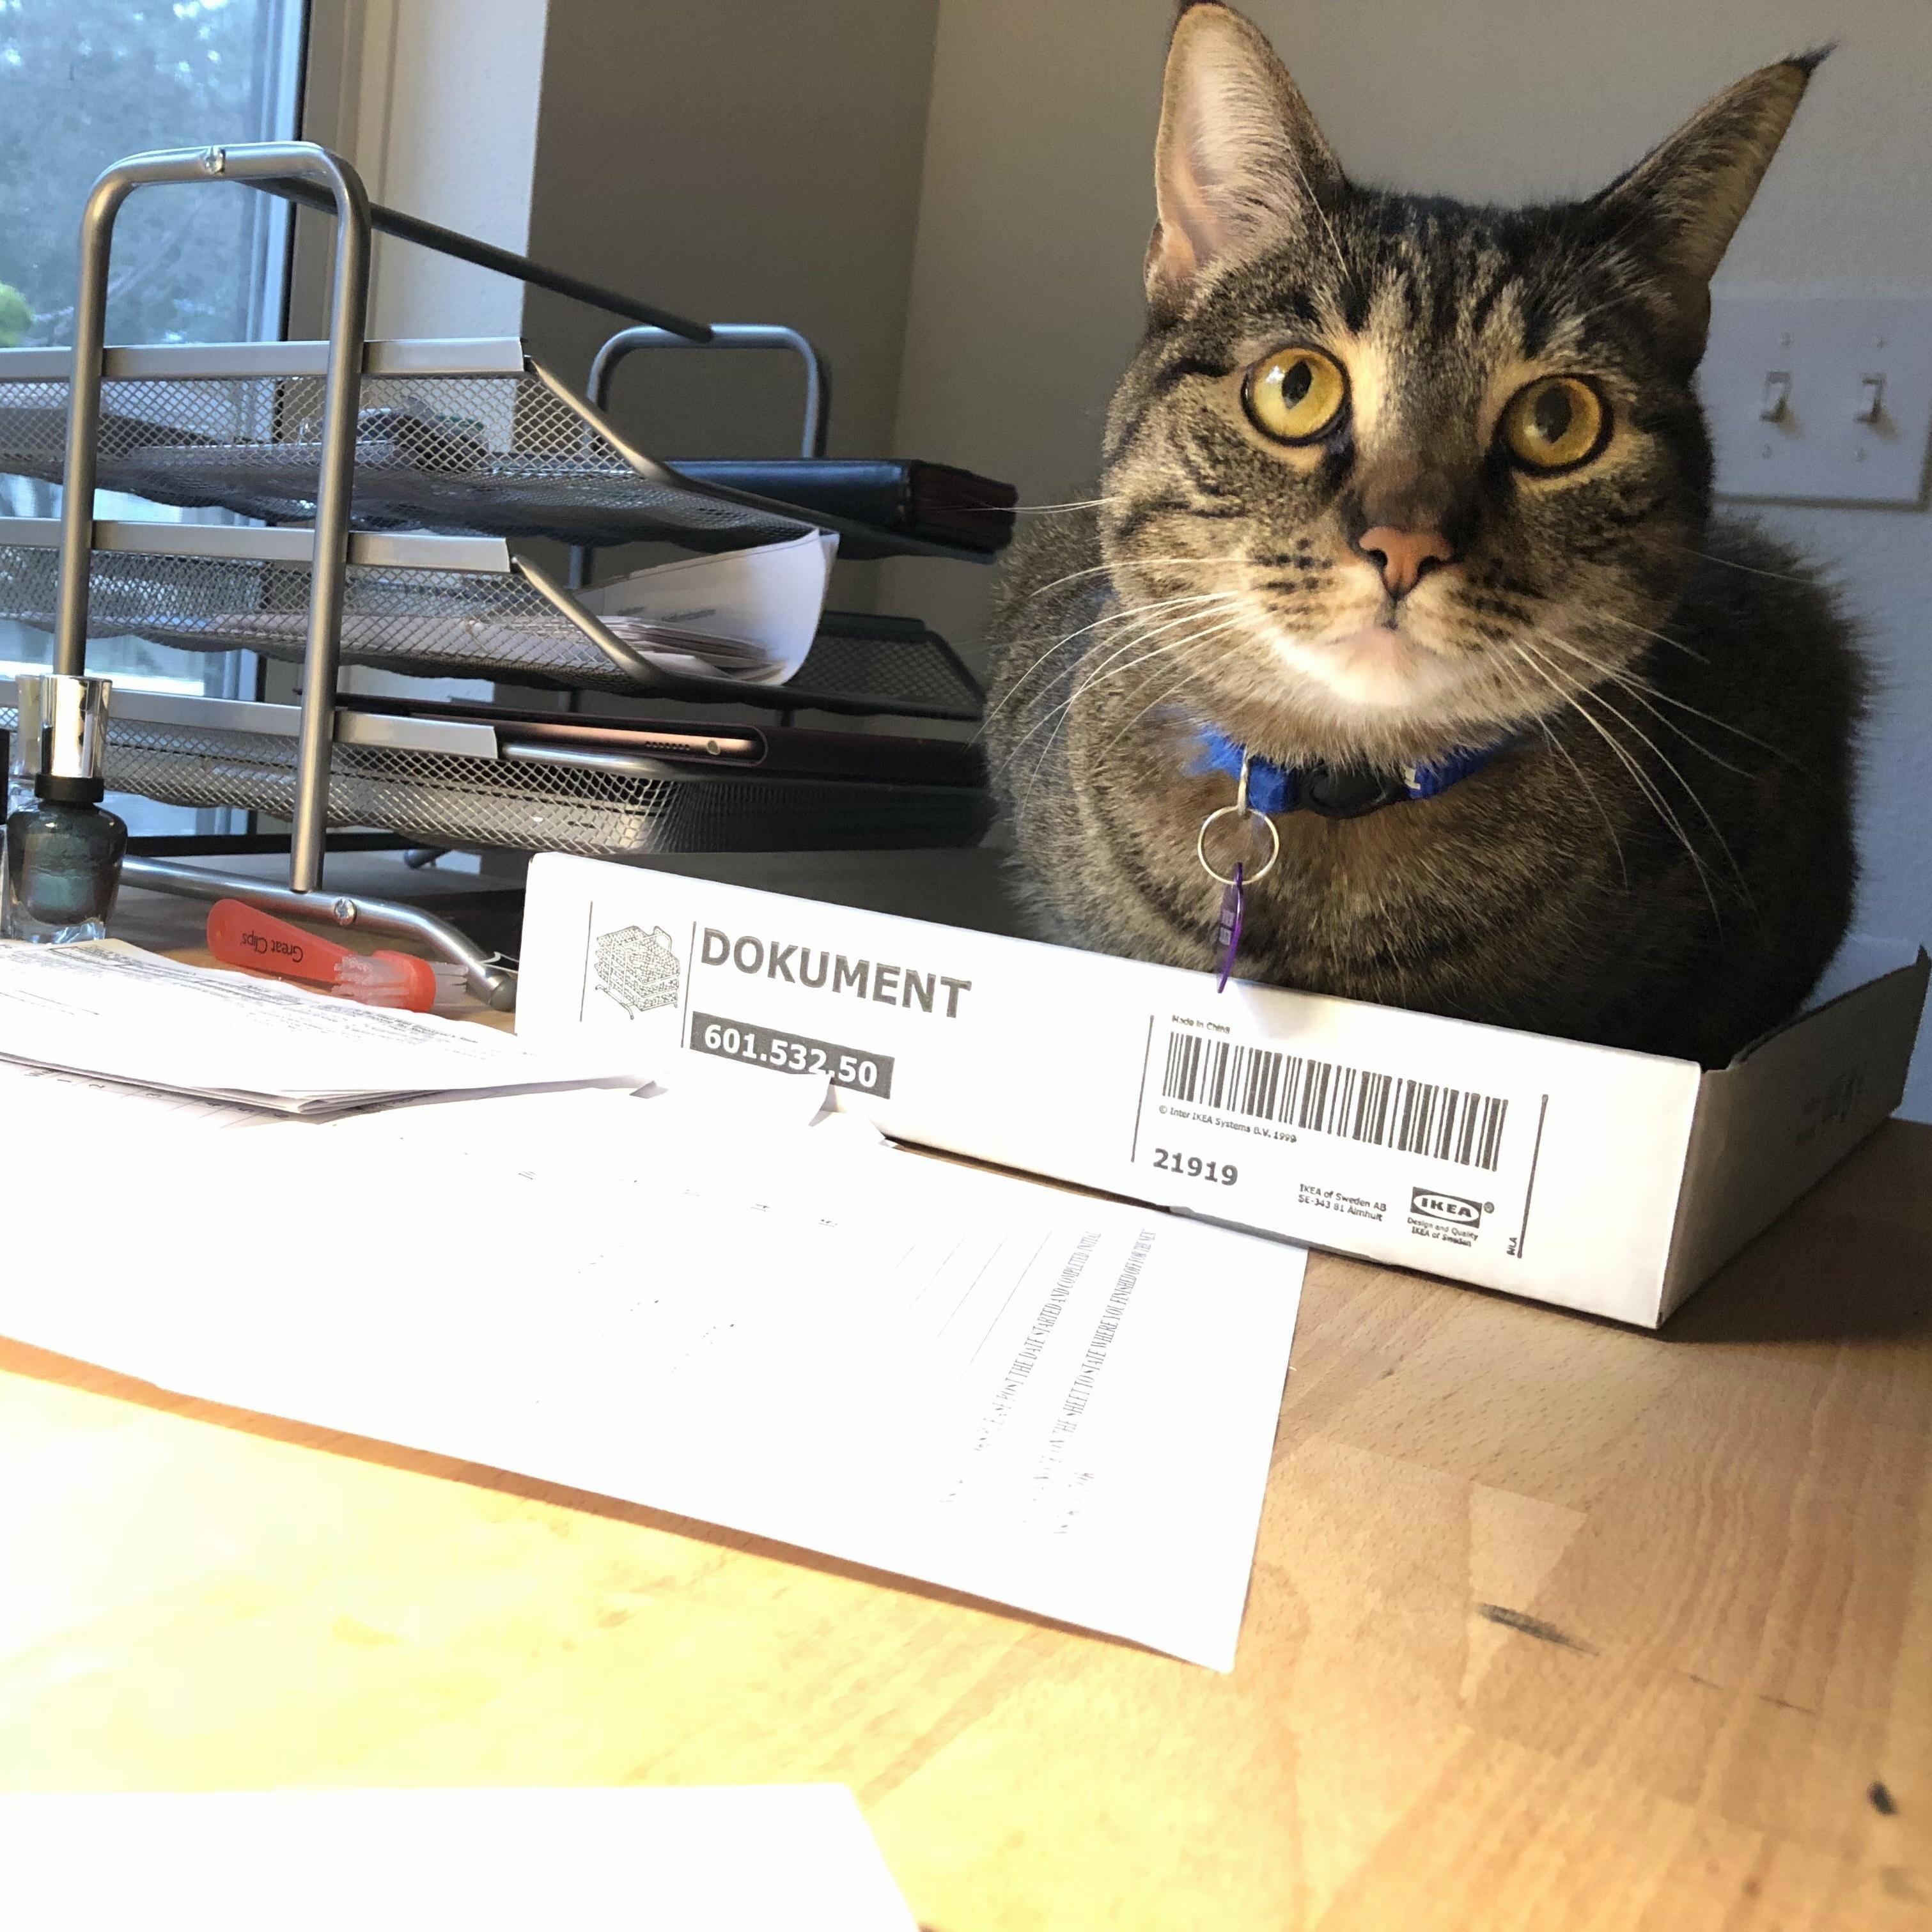 Apparently ikeas desk organizers come with a bonus tray for your cat